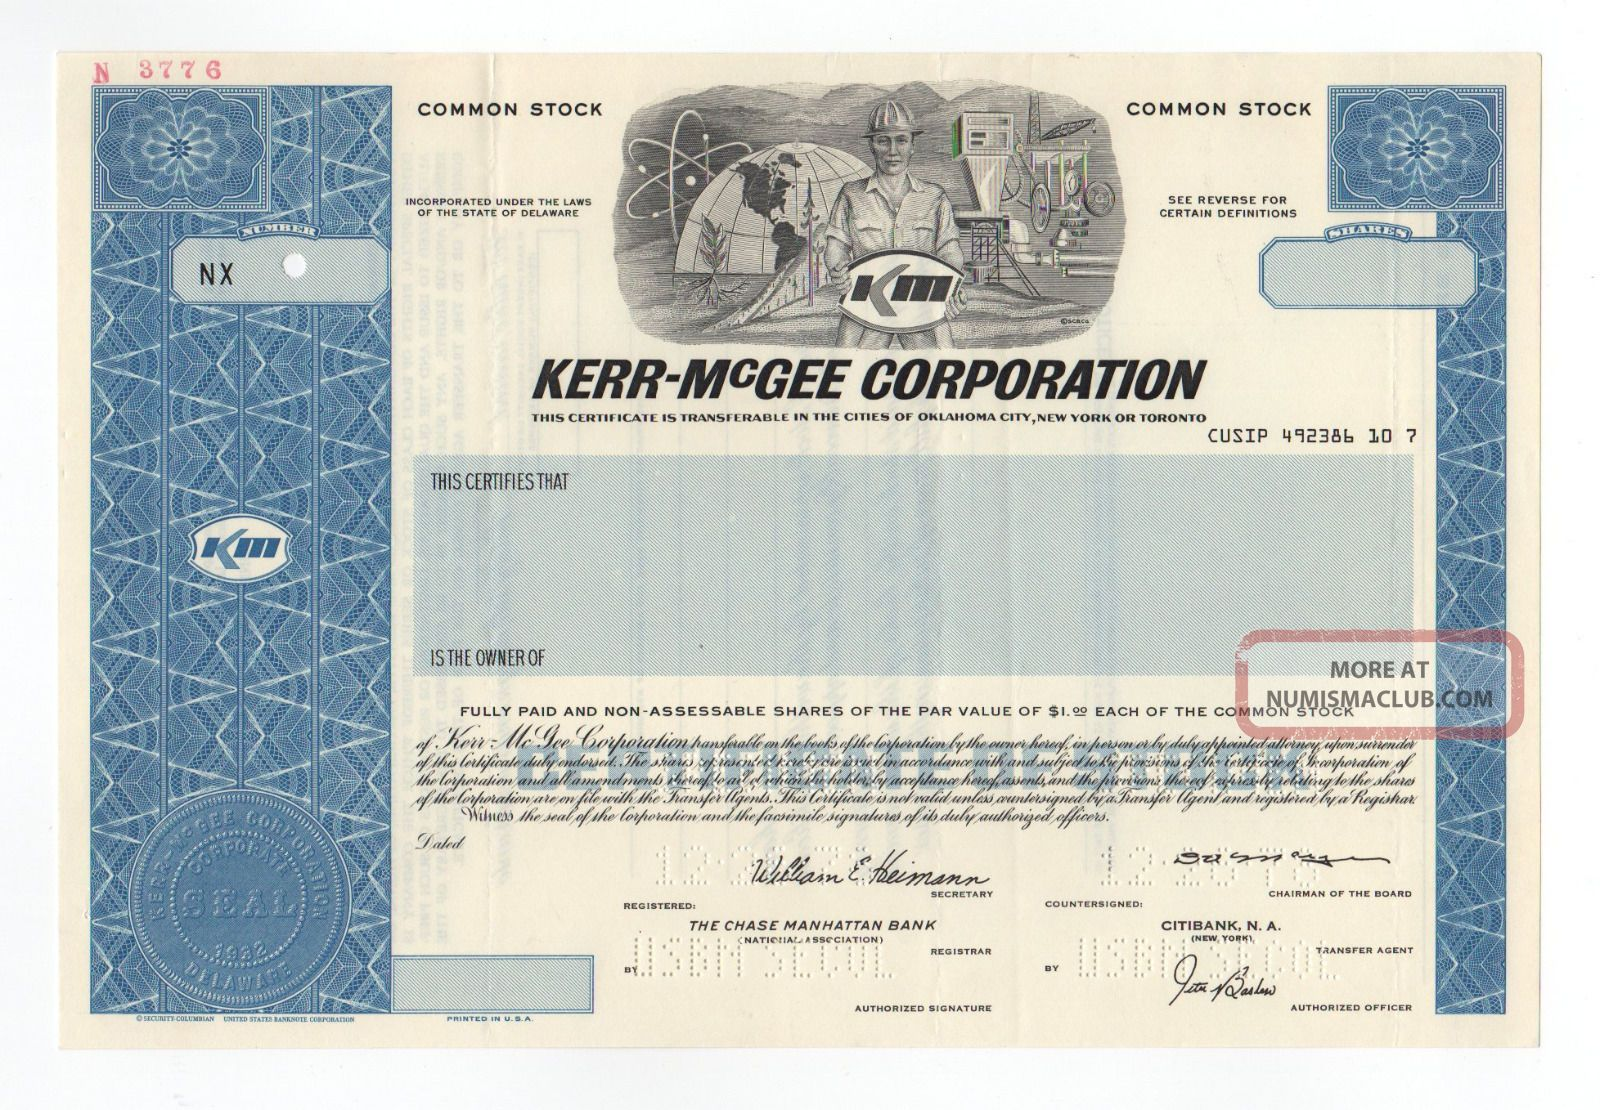 Specimen - Kerr - Mcgee Corporation Stock Certificate Stocks & Bonds, Scripophily photo